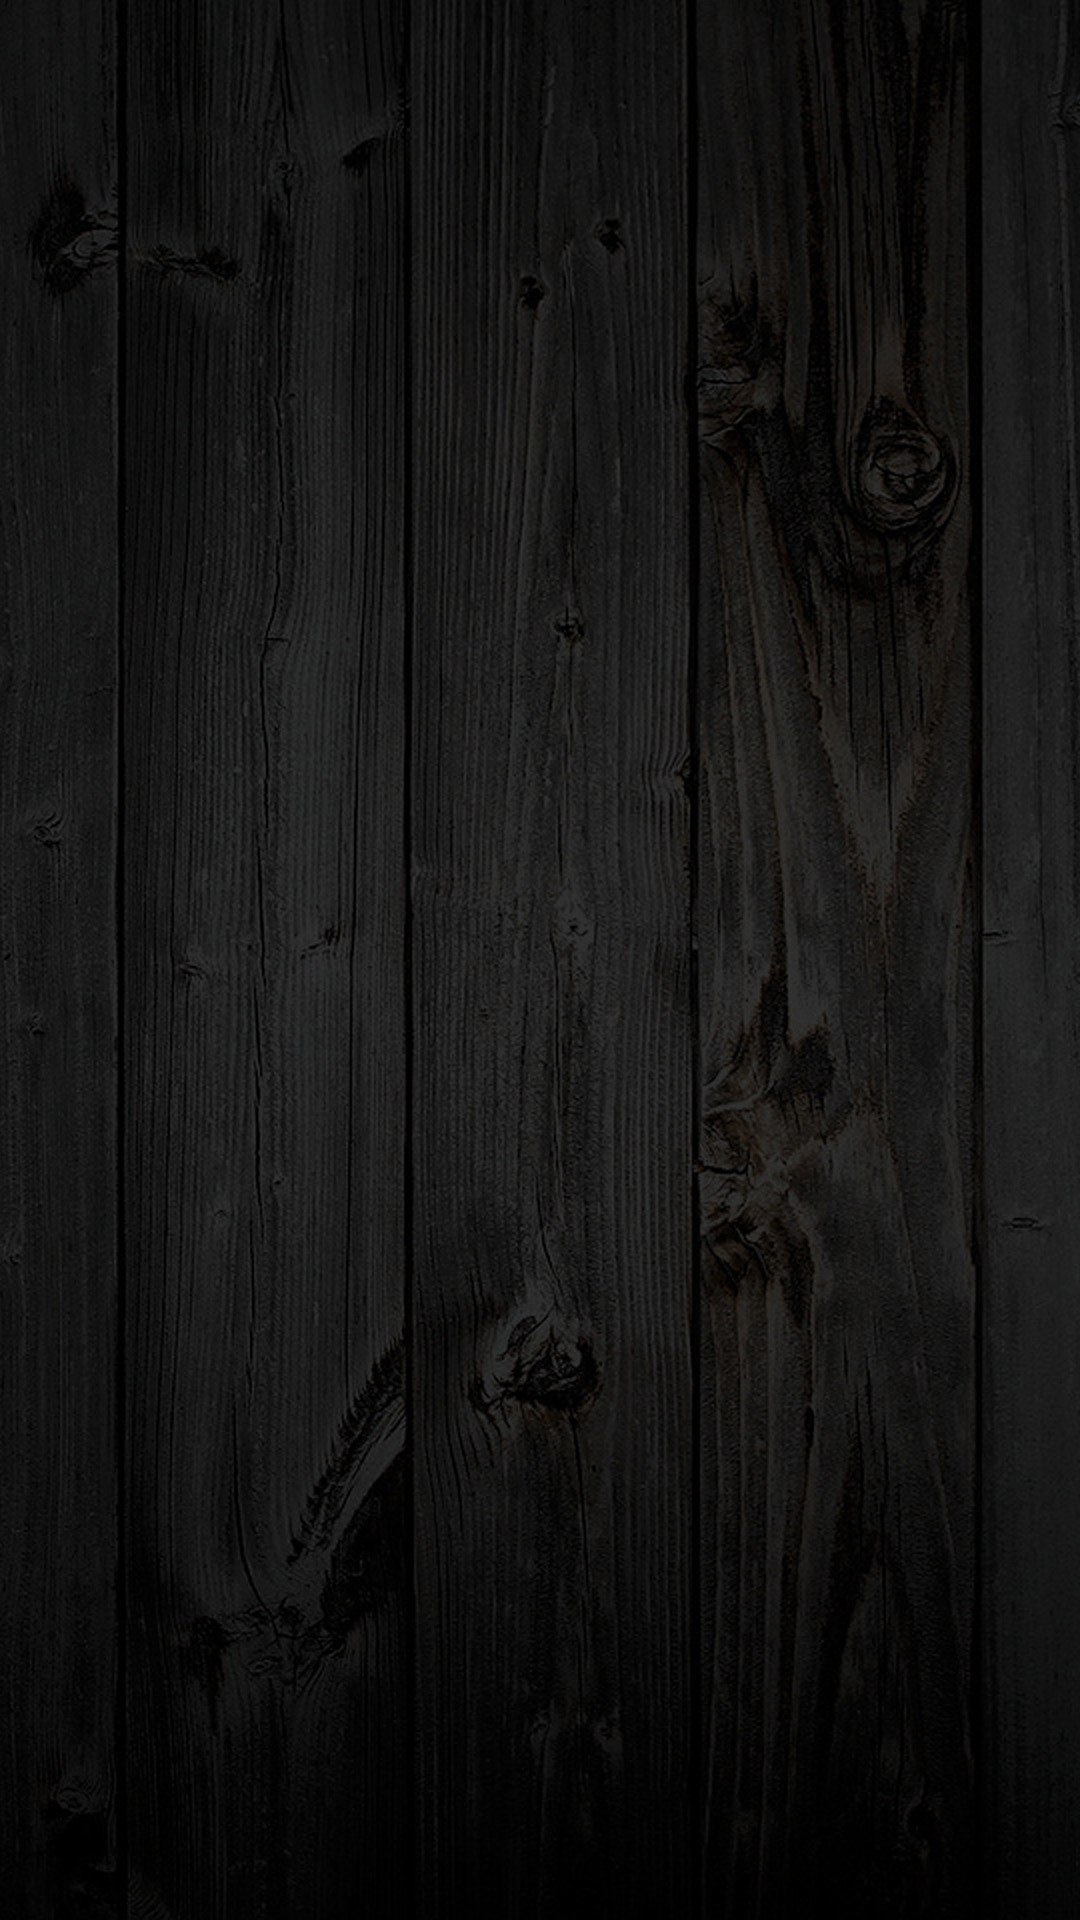 1080x1920 Free Background Dark Wood Texture HD Wallpaper IPhone 6 Plus